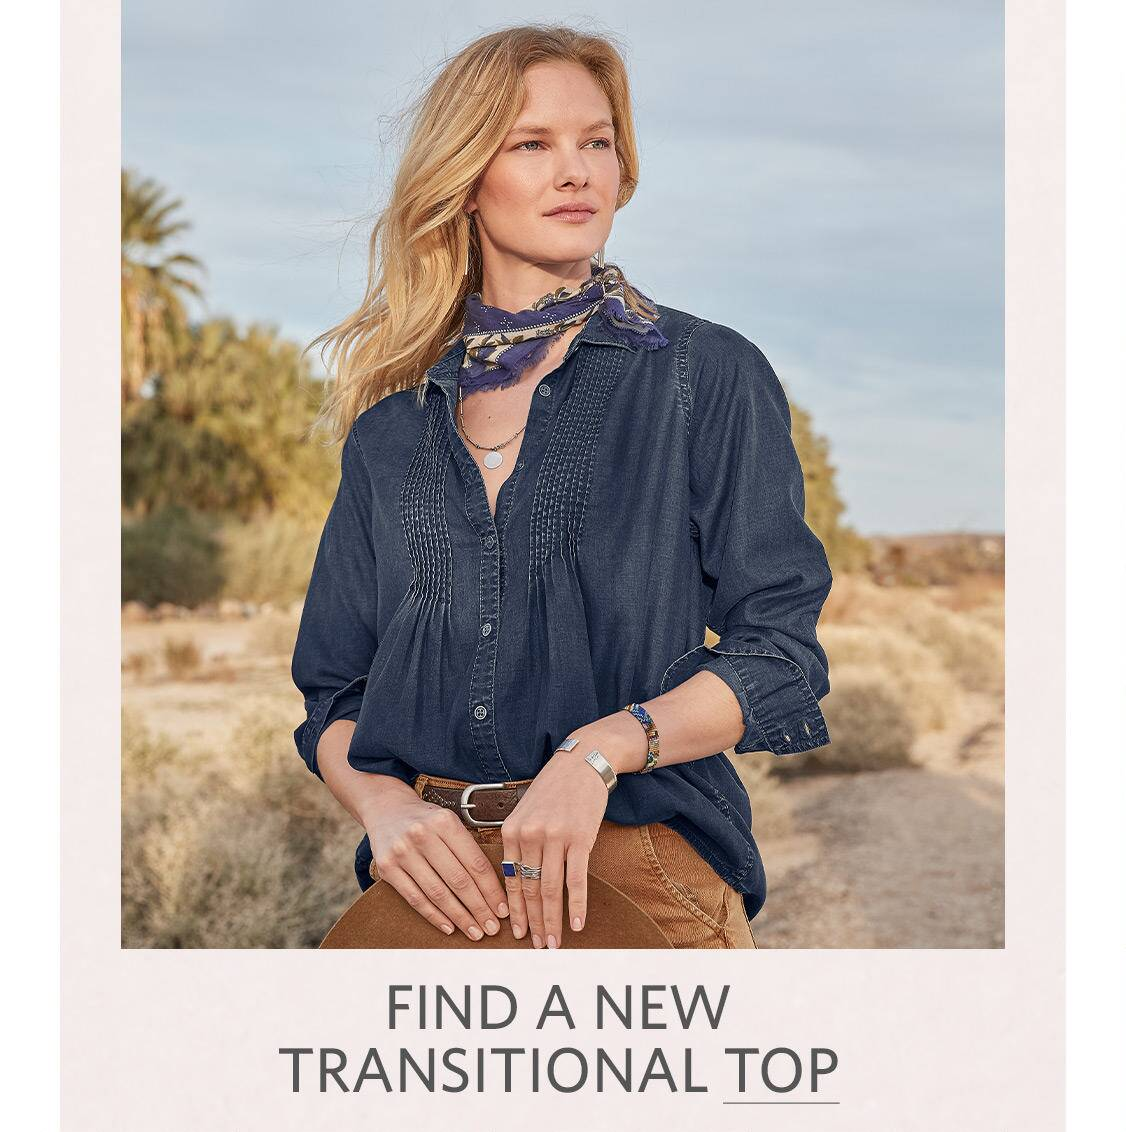 Find a New Top